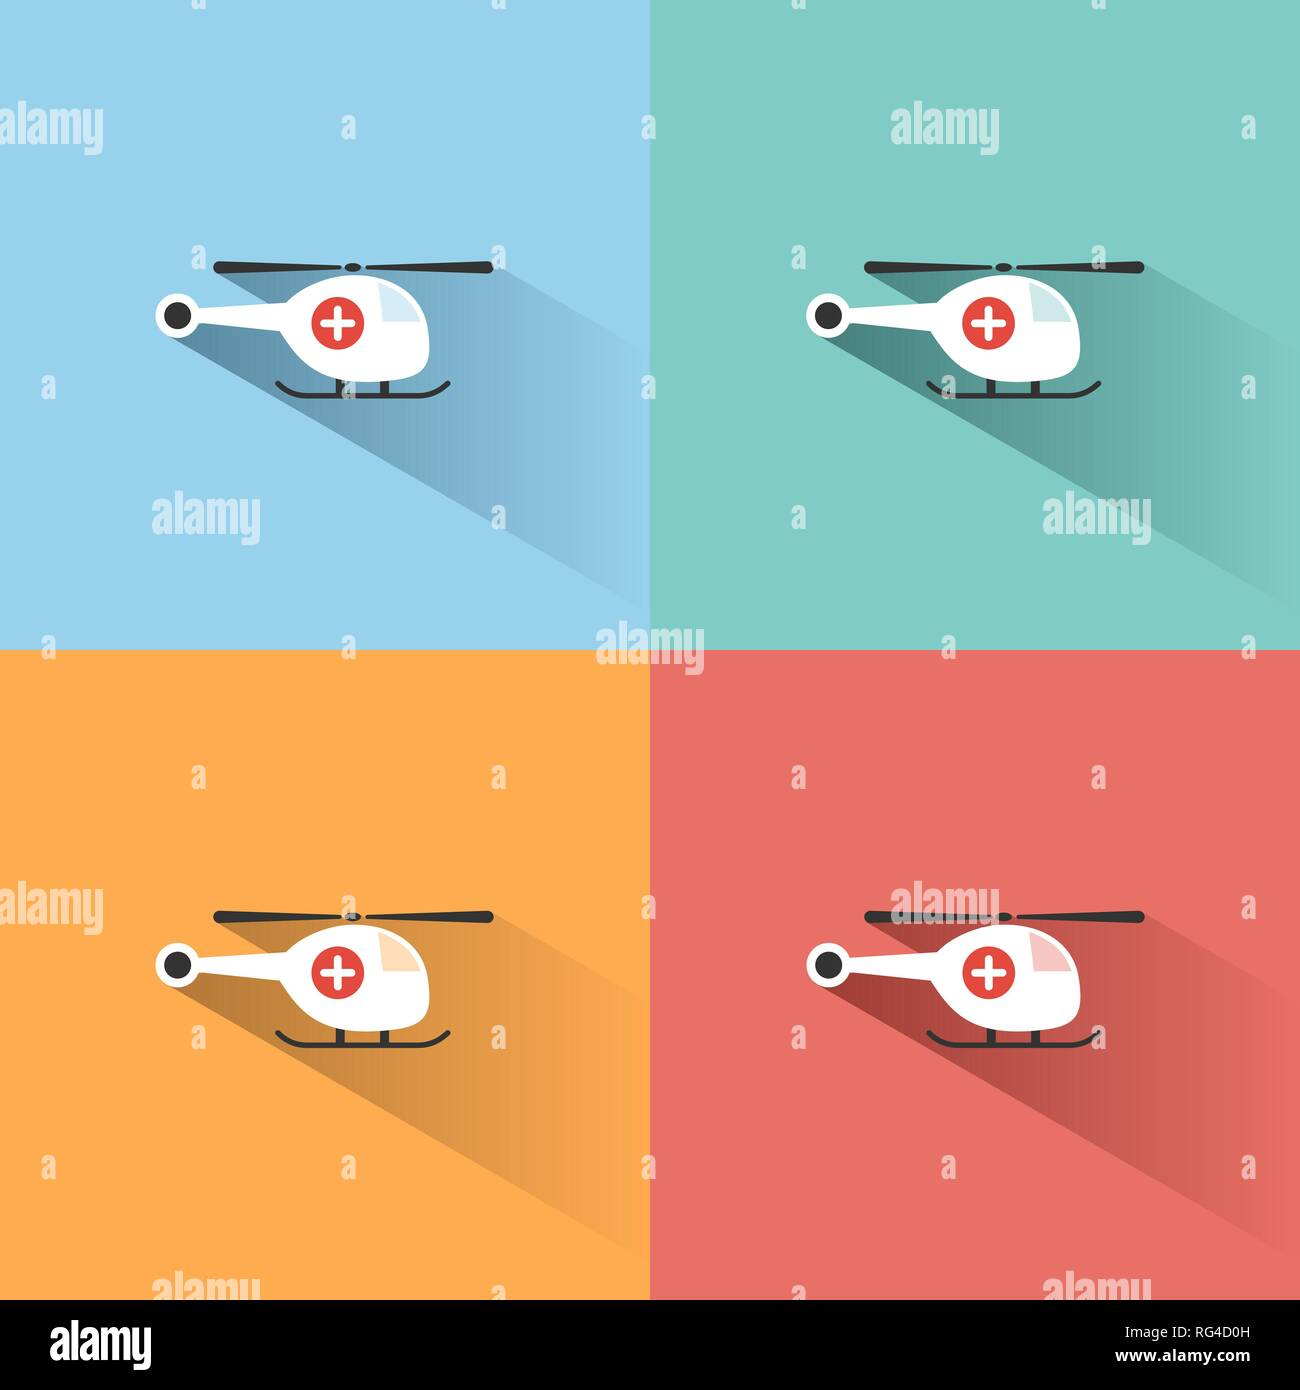 Emergency helicopter icon with shade on colored backgrounds. Vector illustration - Stock Vector